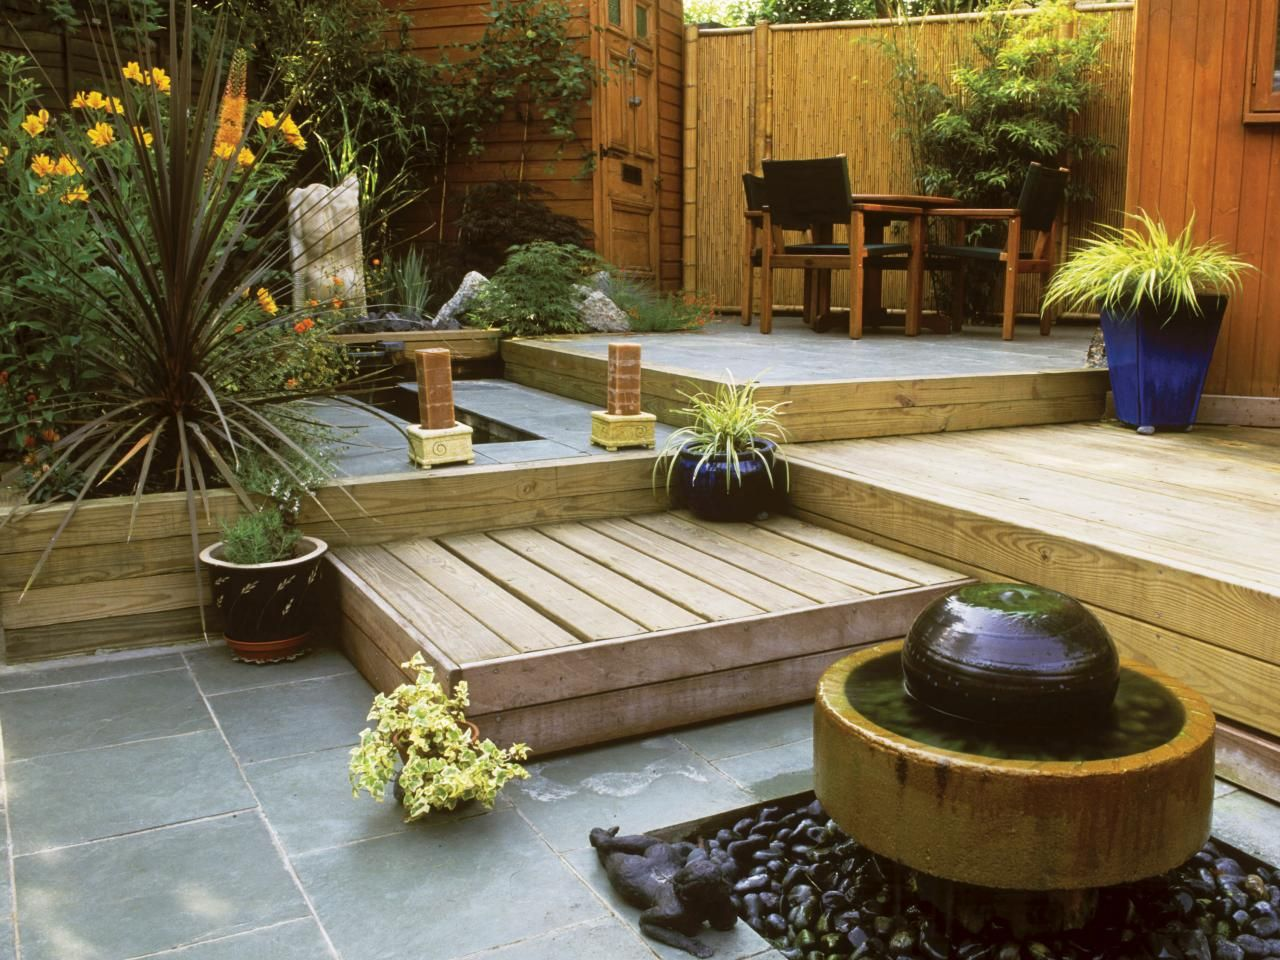 Pictures and Tips for Small Patios | Pinterest | Small yard design ...